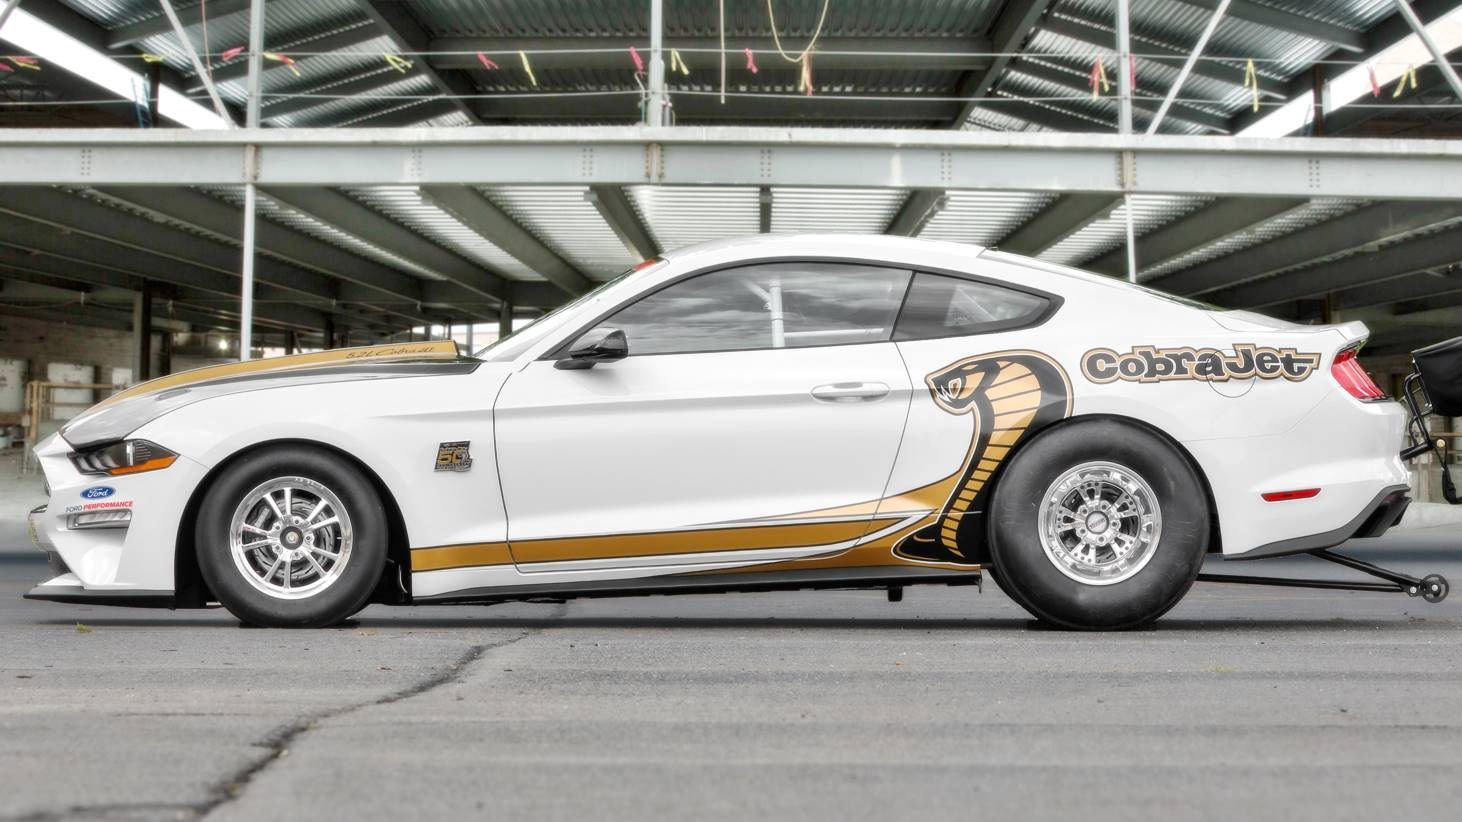 2019 ford mustang cobra jet ford car review for Jet cars review